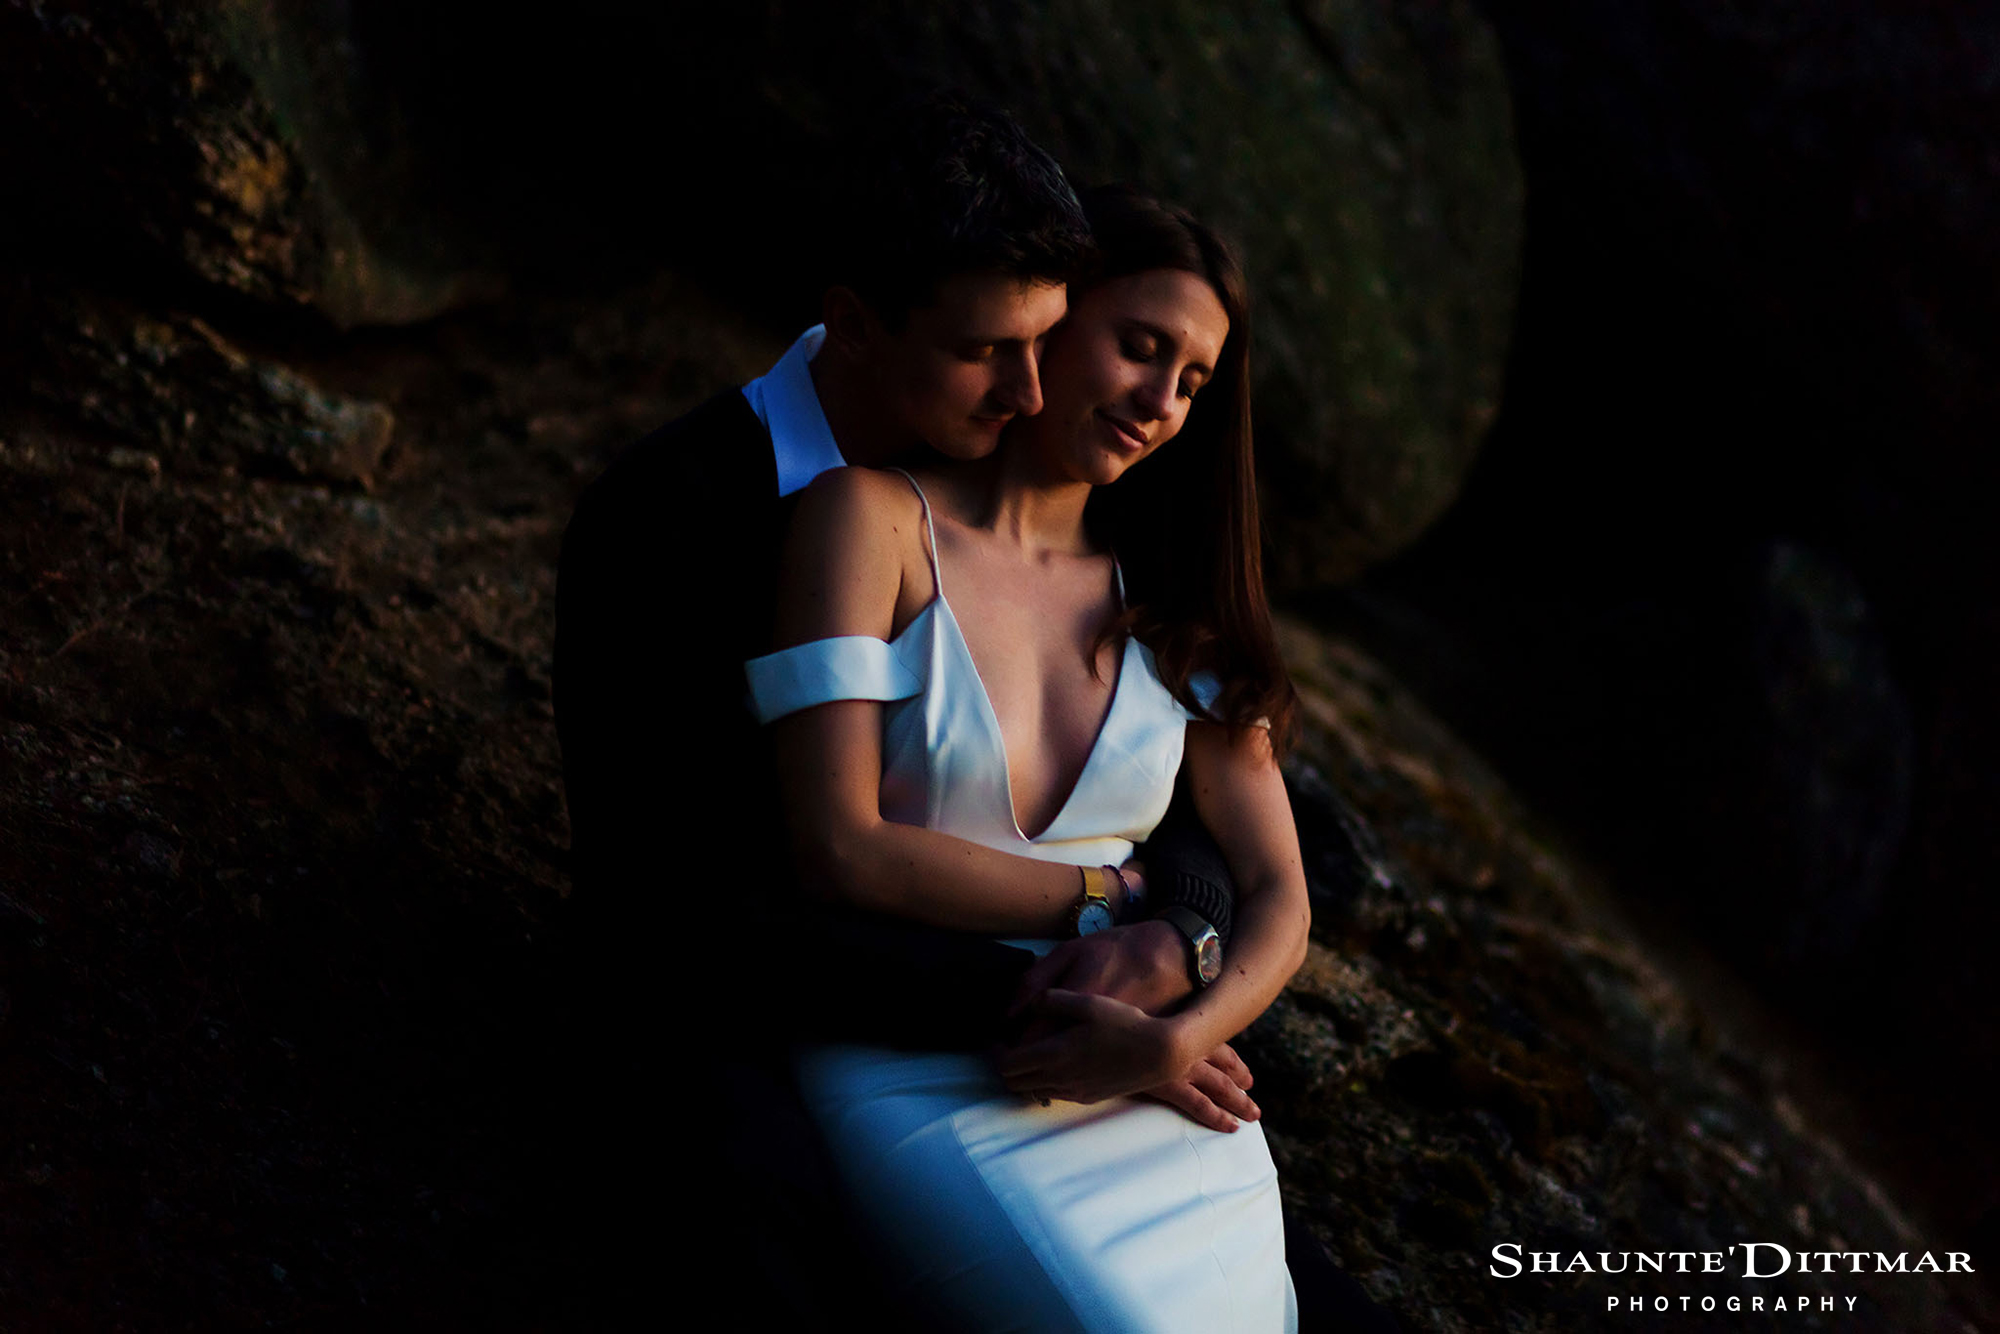 Kim_Daniel_358_Bonzai_Rock_Engagement_Lake_Tahoe_Shaunte_Dittmar_Photography.jpg